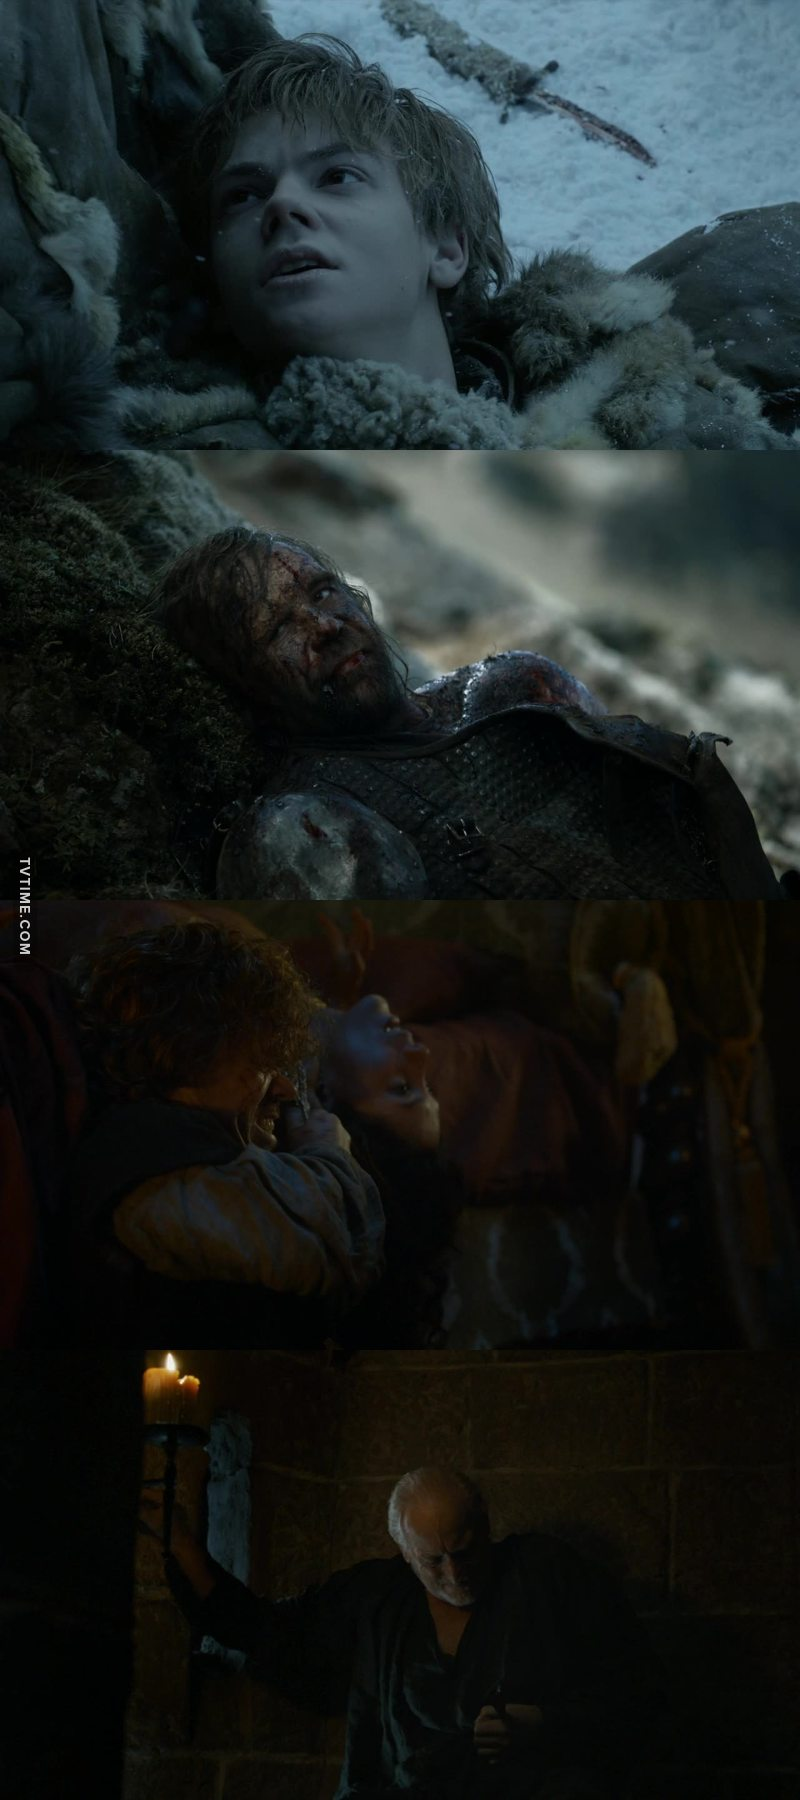 When no one dies for the whole episode, and it seems strange to you. But in the last 10 minutes they kill 4 characters. :)